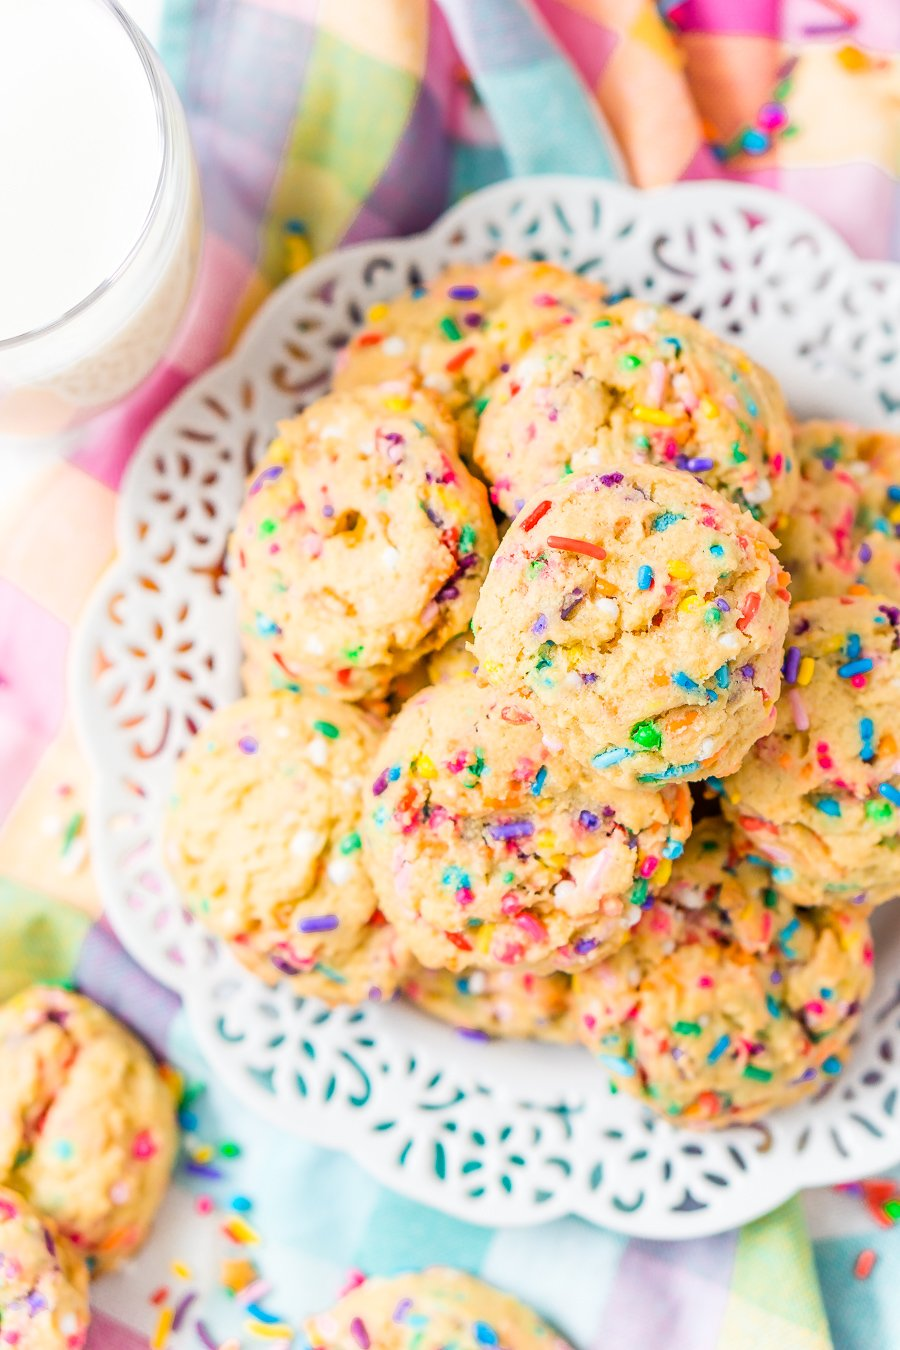 These Birthday Cake Pudding Cookies are sweet, chewy and loaded up with sprinkles. Temptingvanilla makes them the perfect alternative to cake, or you know, have both! I did!